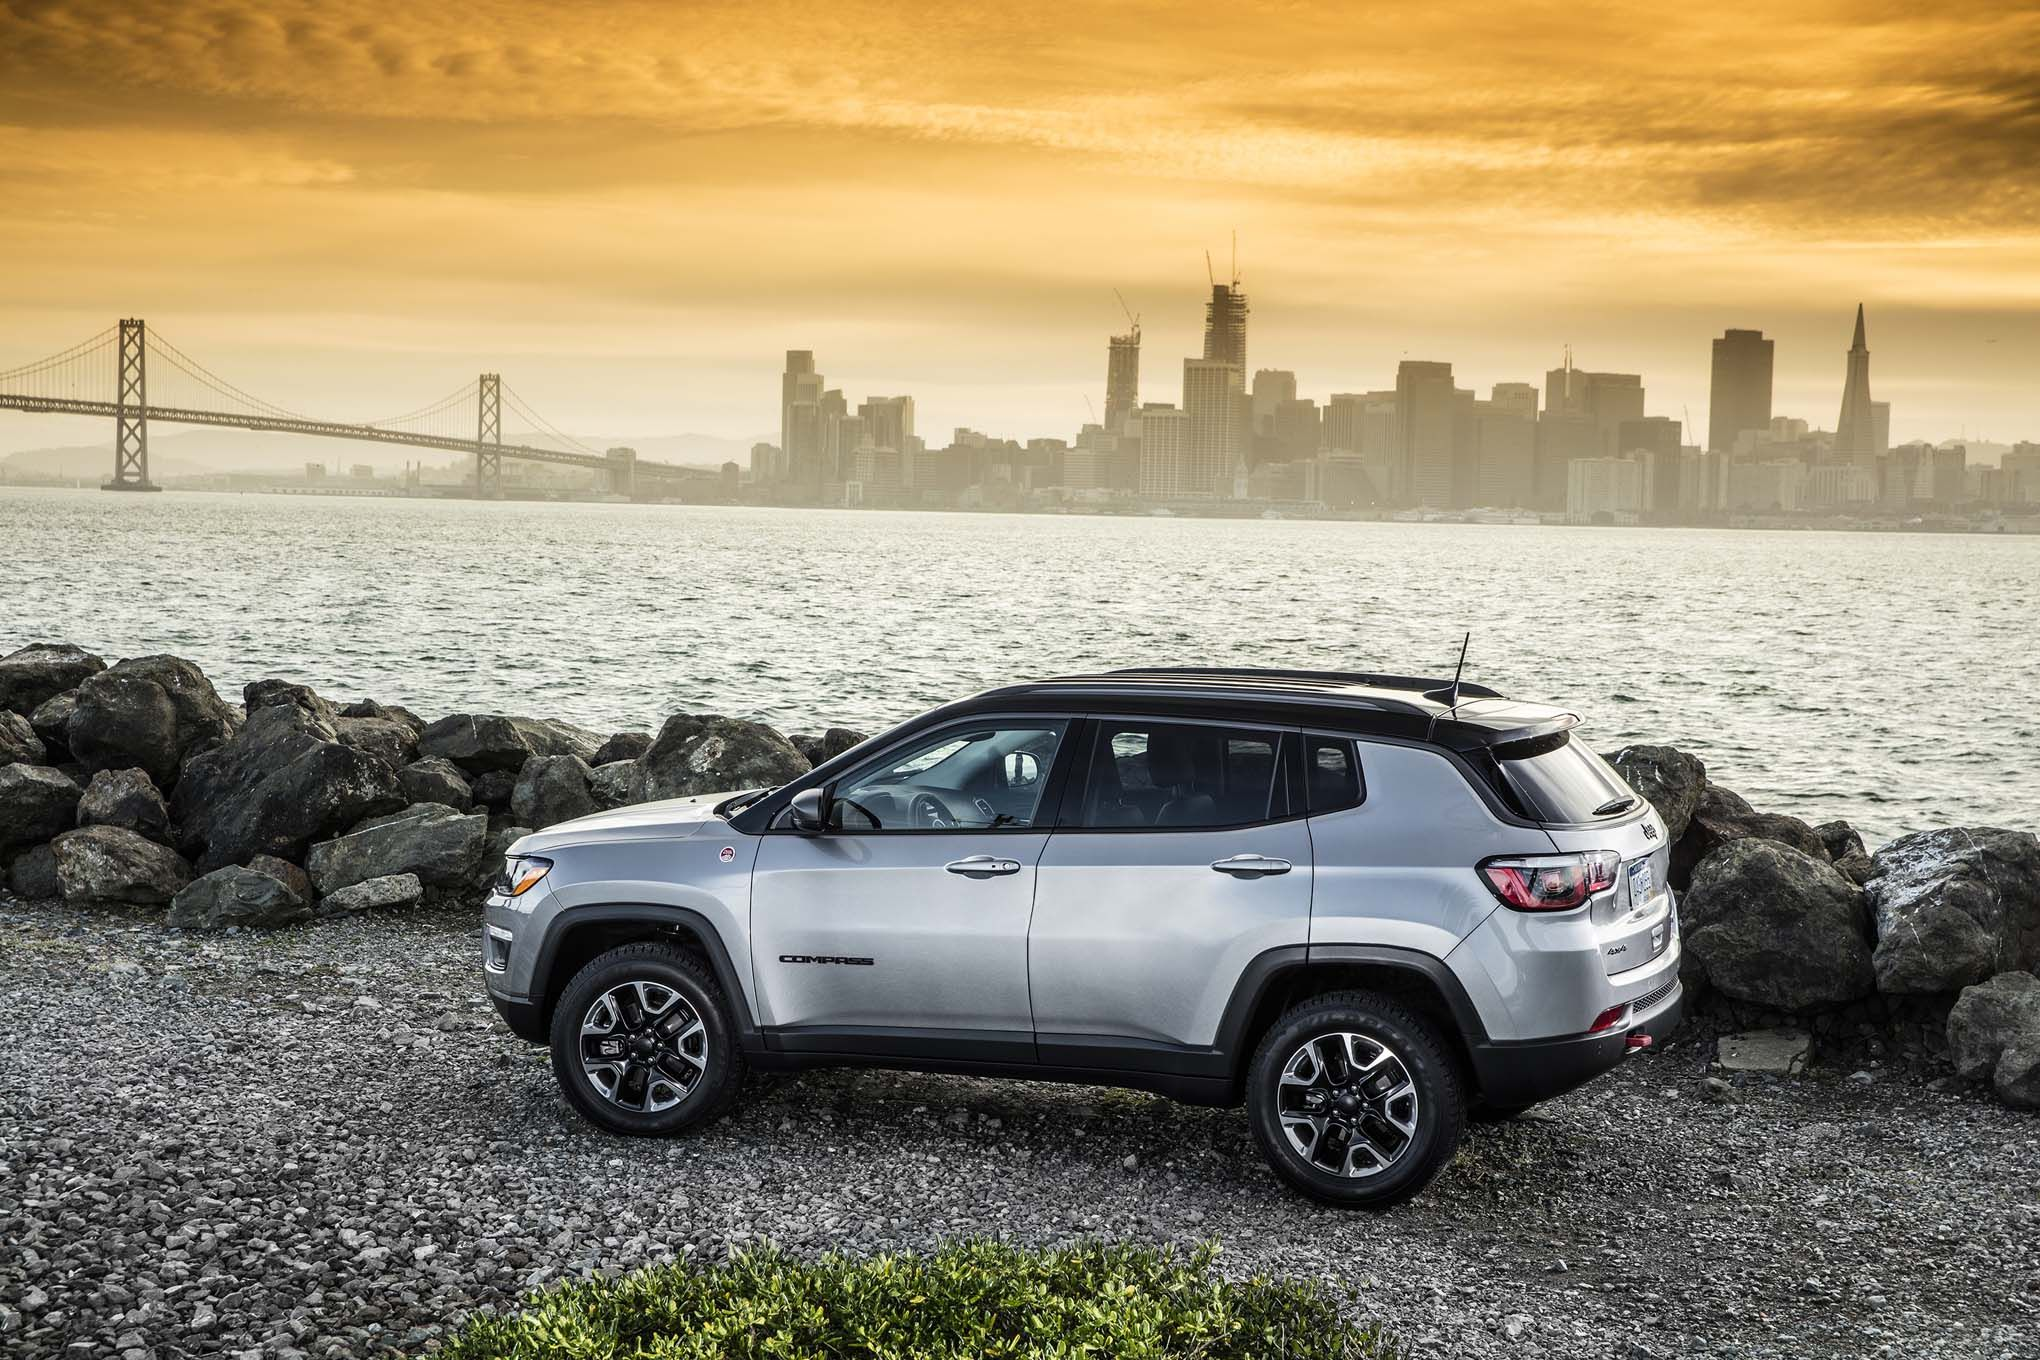 2017 Jeep Compass Ready For The Unexpected In New Ad With Images